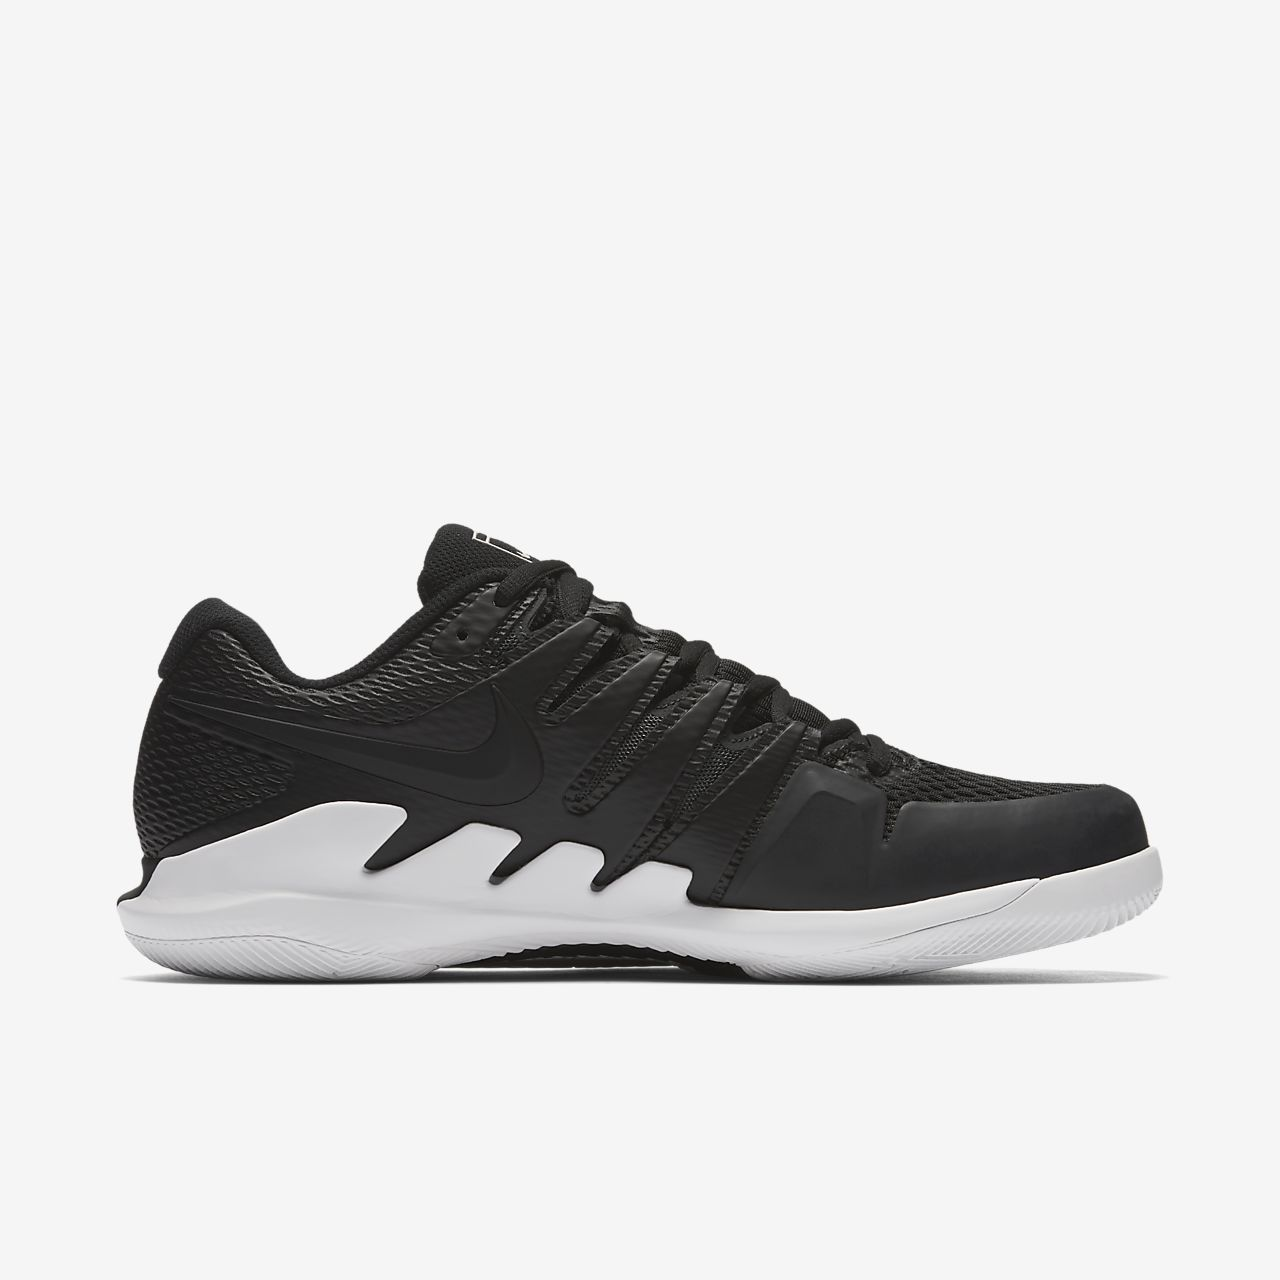 NIKECOURT AIR ZOOM VAPOR X AA8030 010 Black Vast Grey Anthracite Black